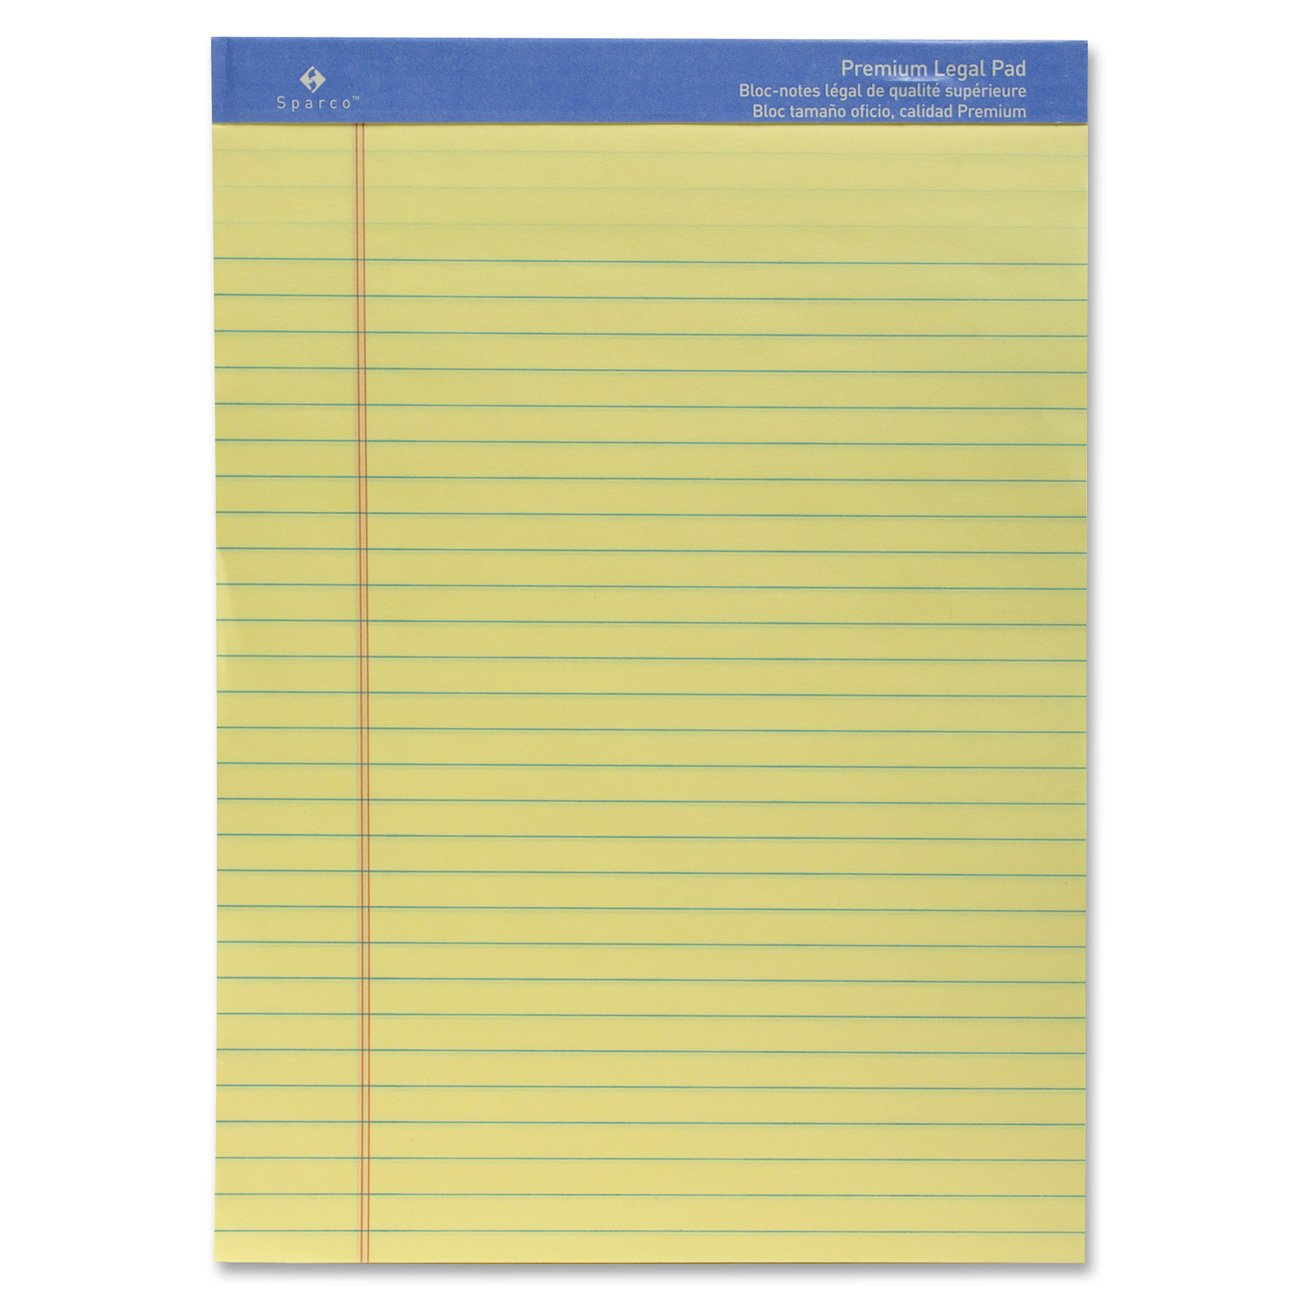 Sparco Perforated Wide Pad, 50 Sheets, 8 1/2 x 11 3/4 Inches, Canary(SPR1011)